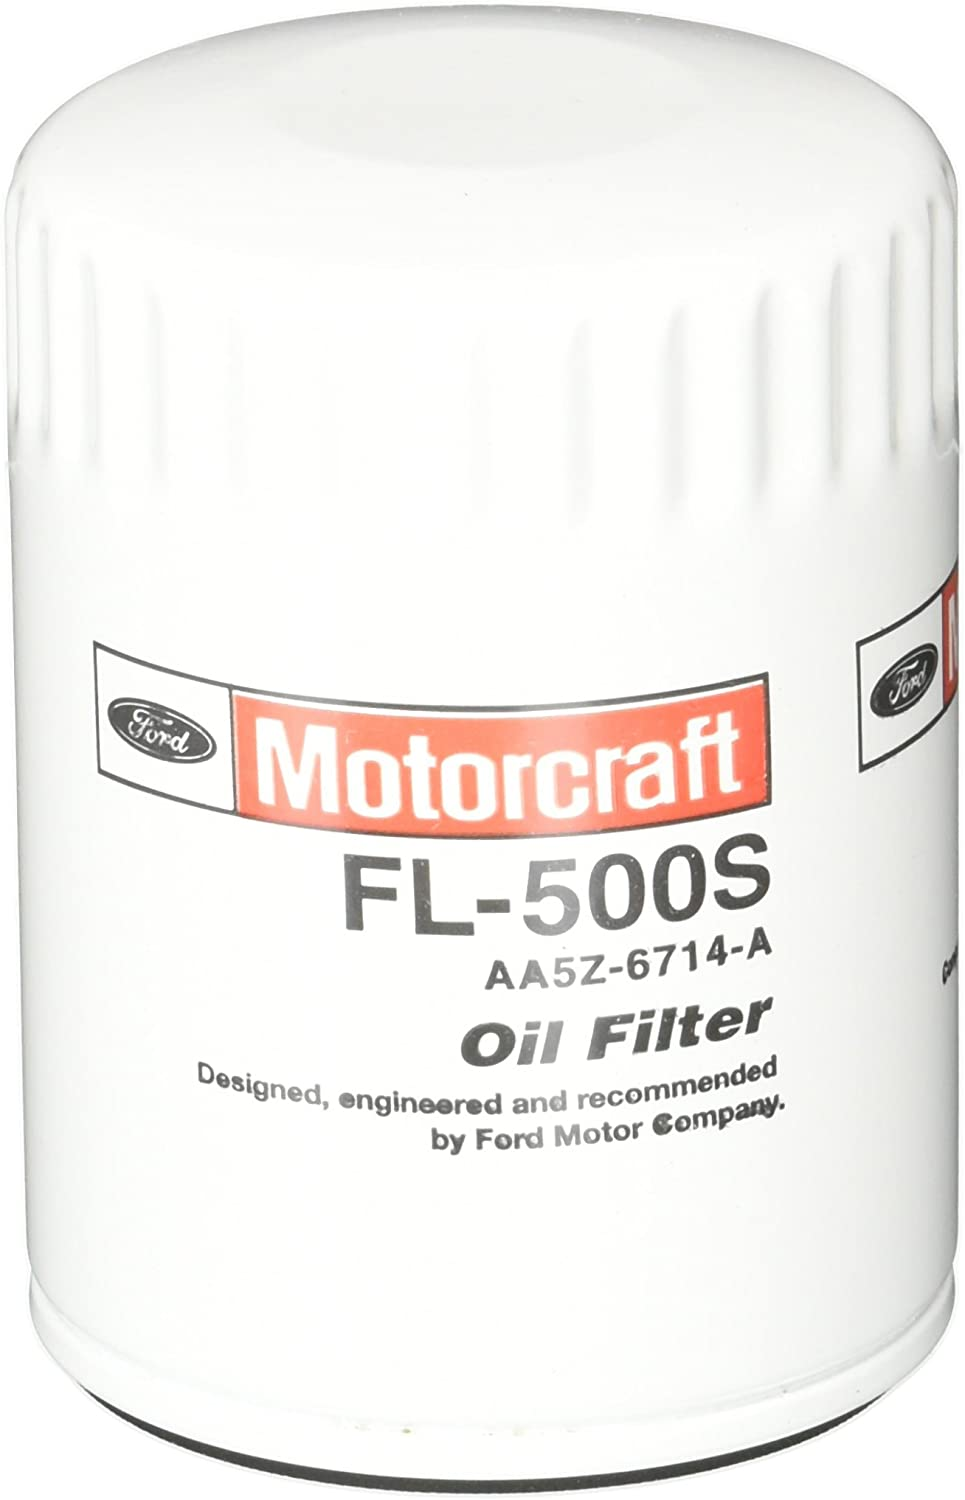 Genuine Ford Parts AA5Z-6714-A Oil Filter